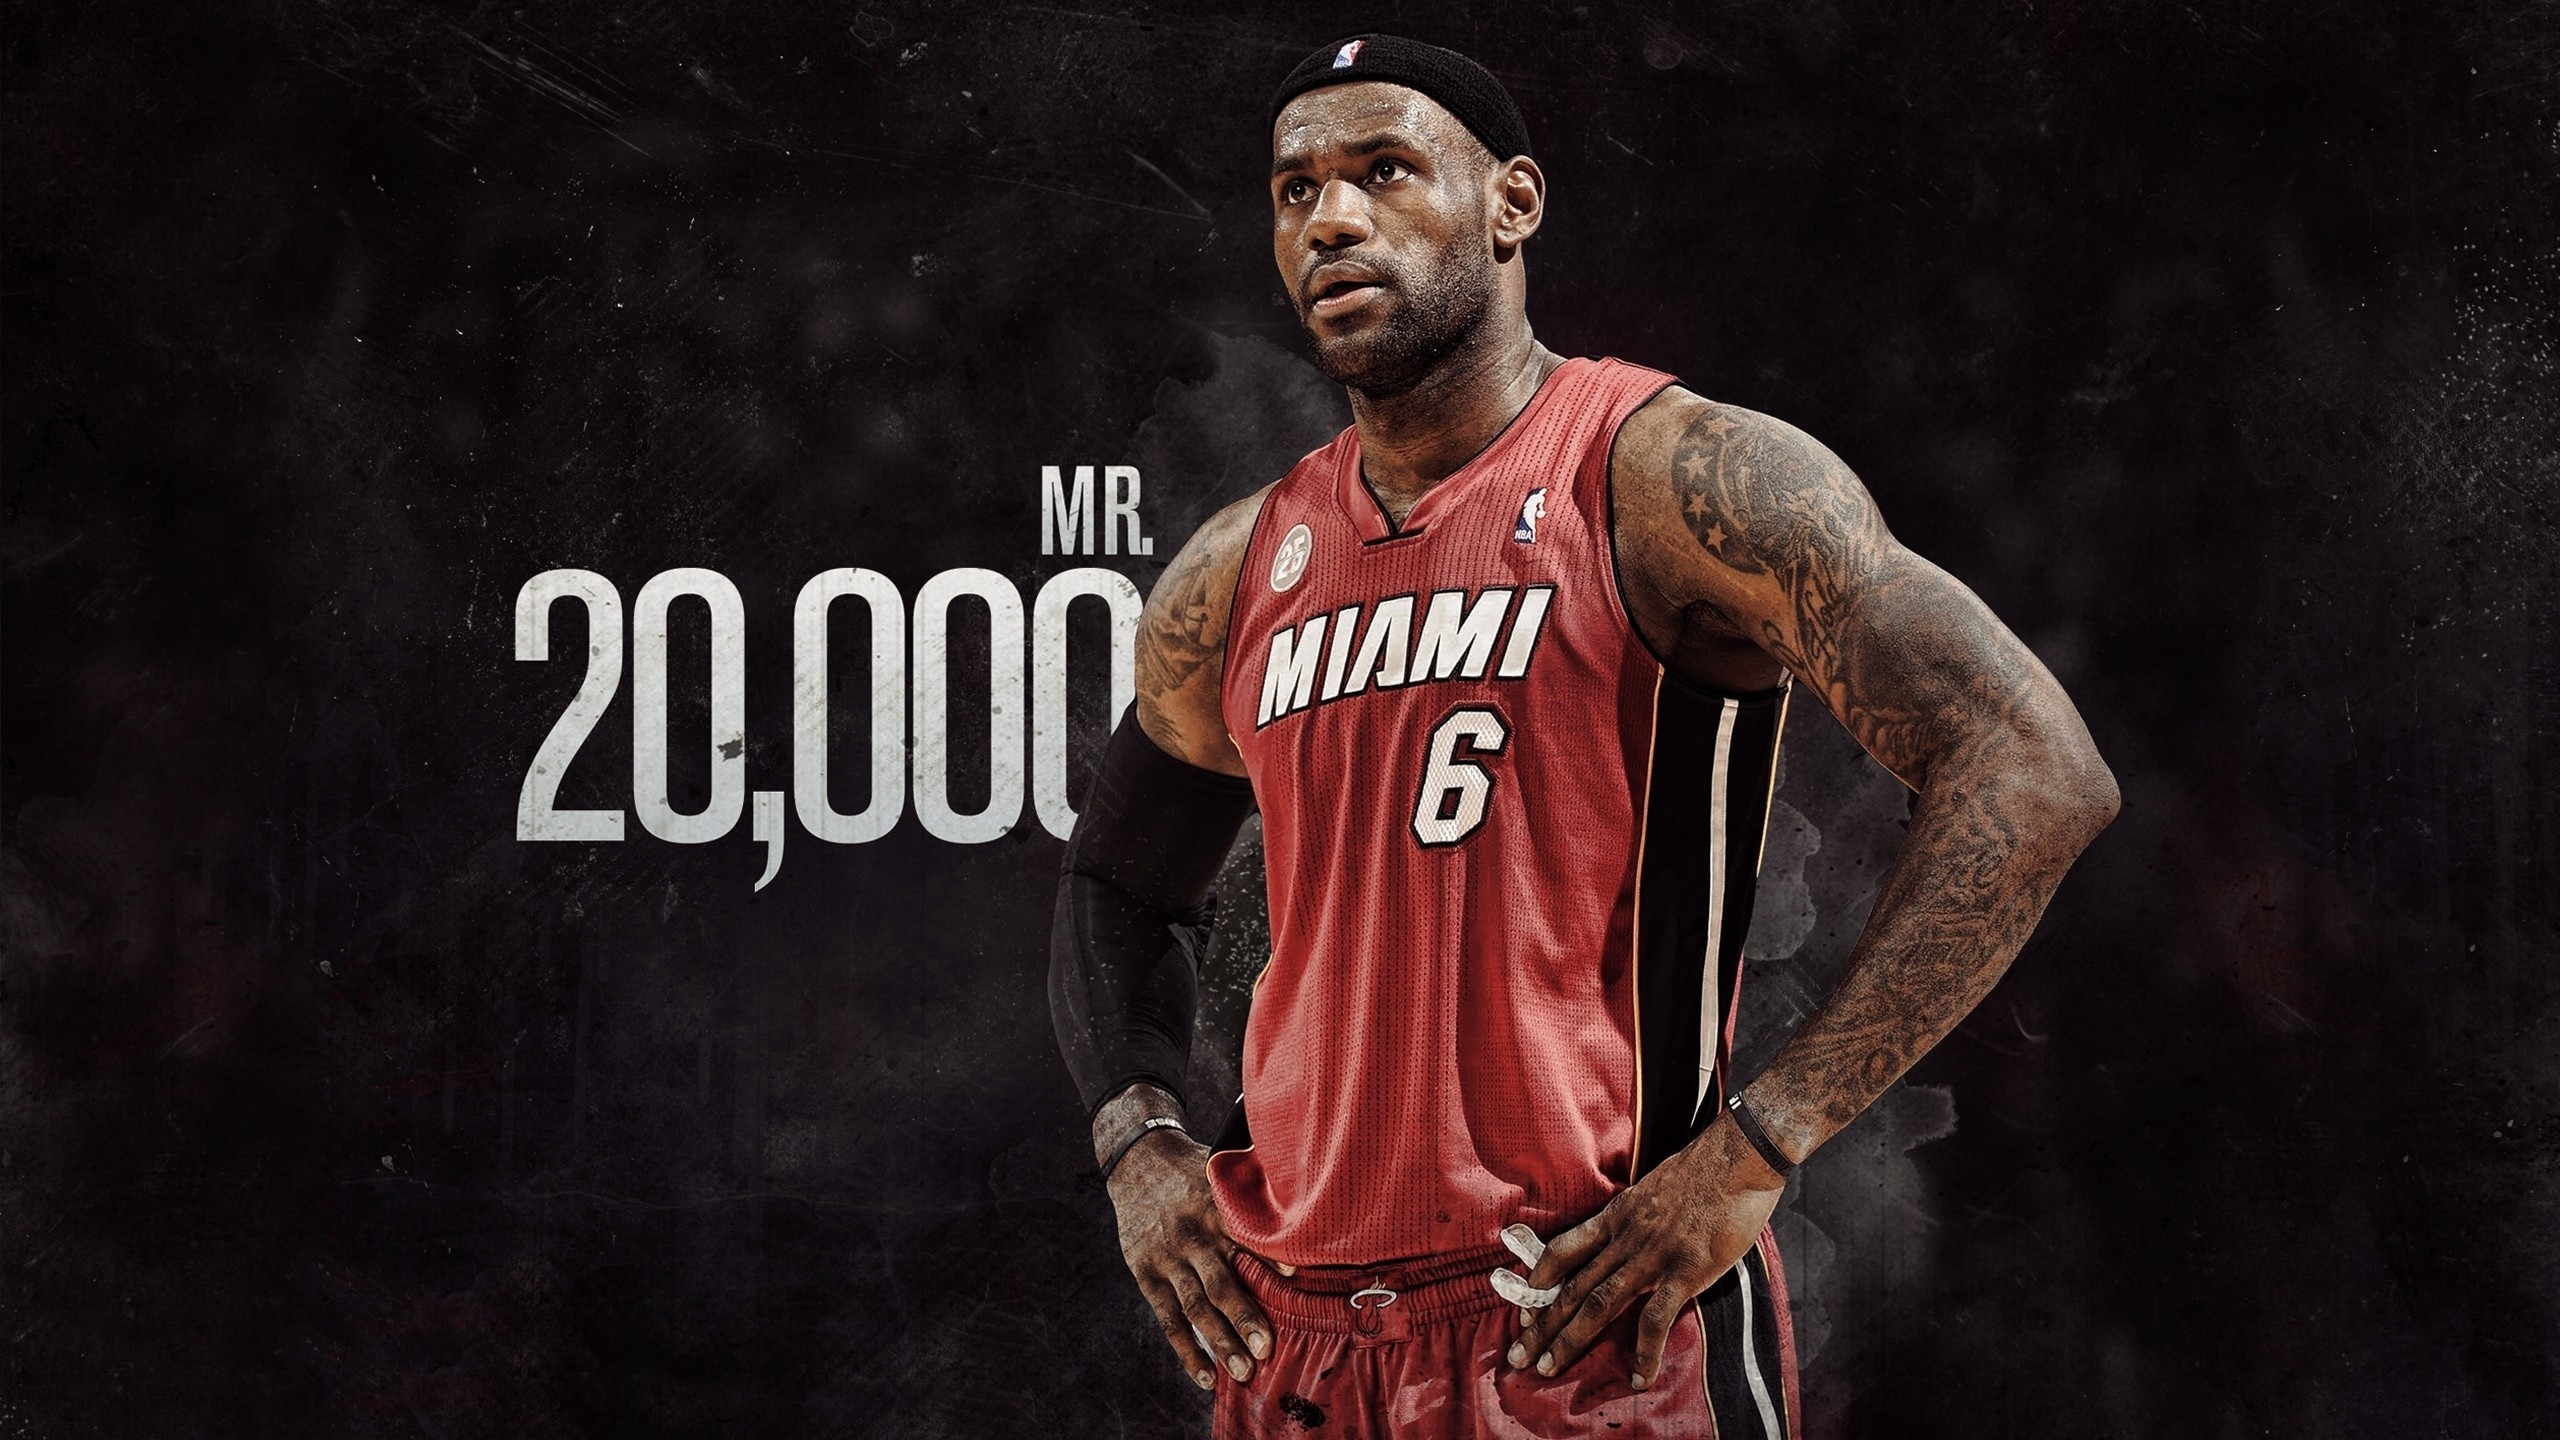 2560x1440 Miami Heat Wallpaper Lebron James The Finals Images & Pictures - Becuo